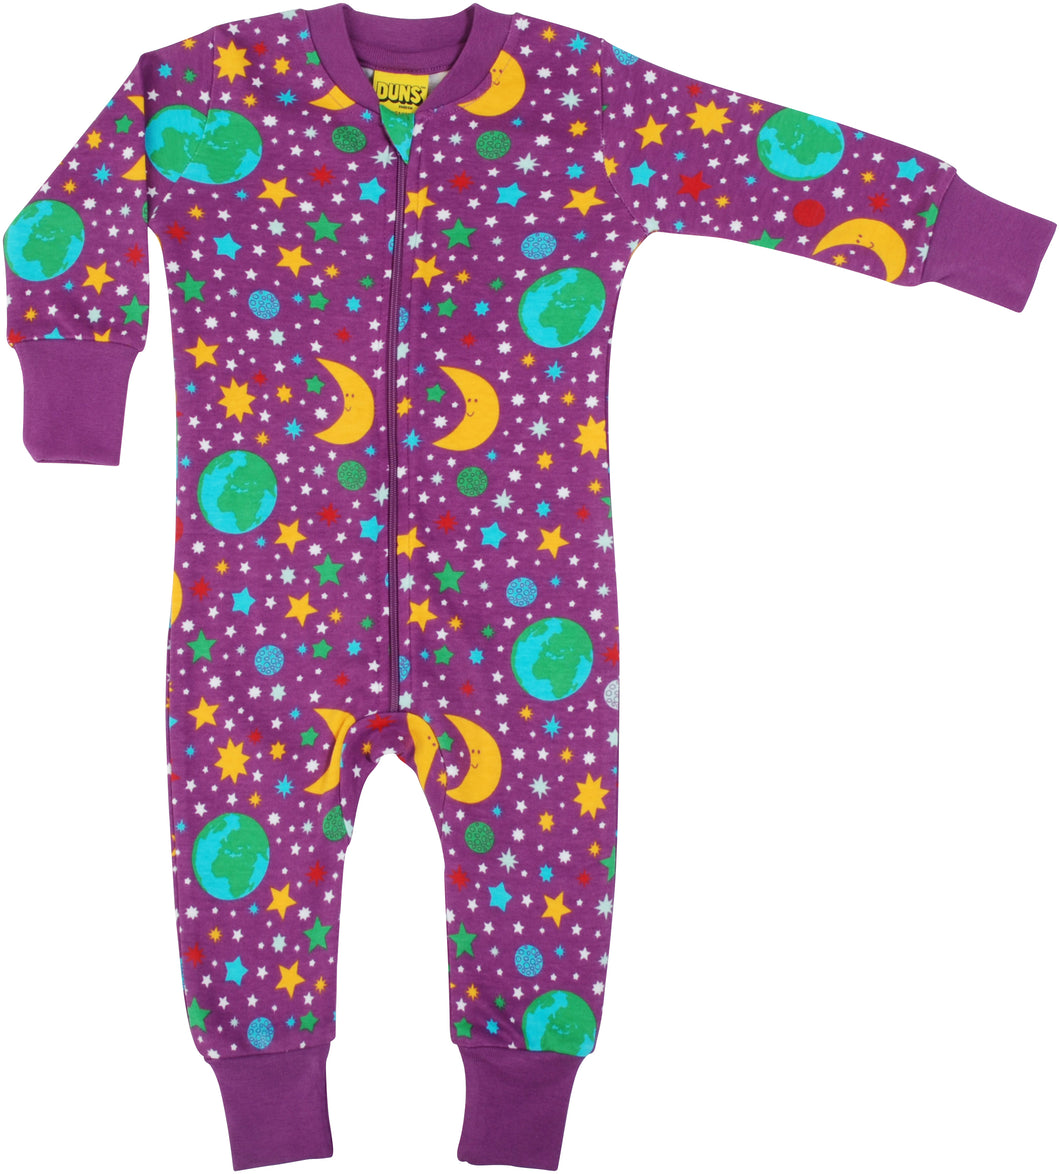 DUNS Sweden Zip Suit - Mother Earth Bright Violet